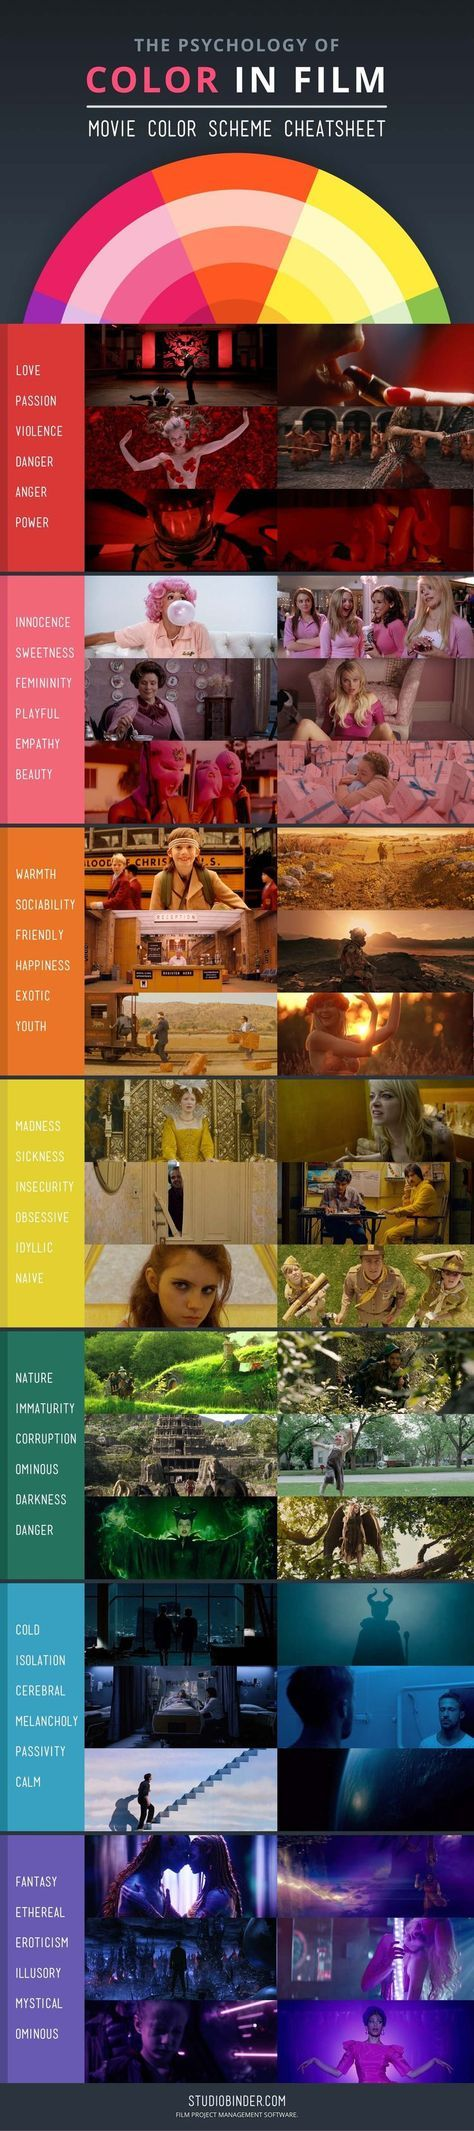 The Psychology of Color in Film - Imgur                                                                                                                                                                                 More